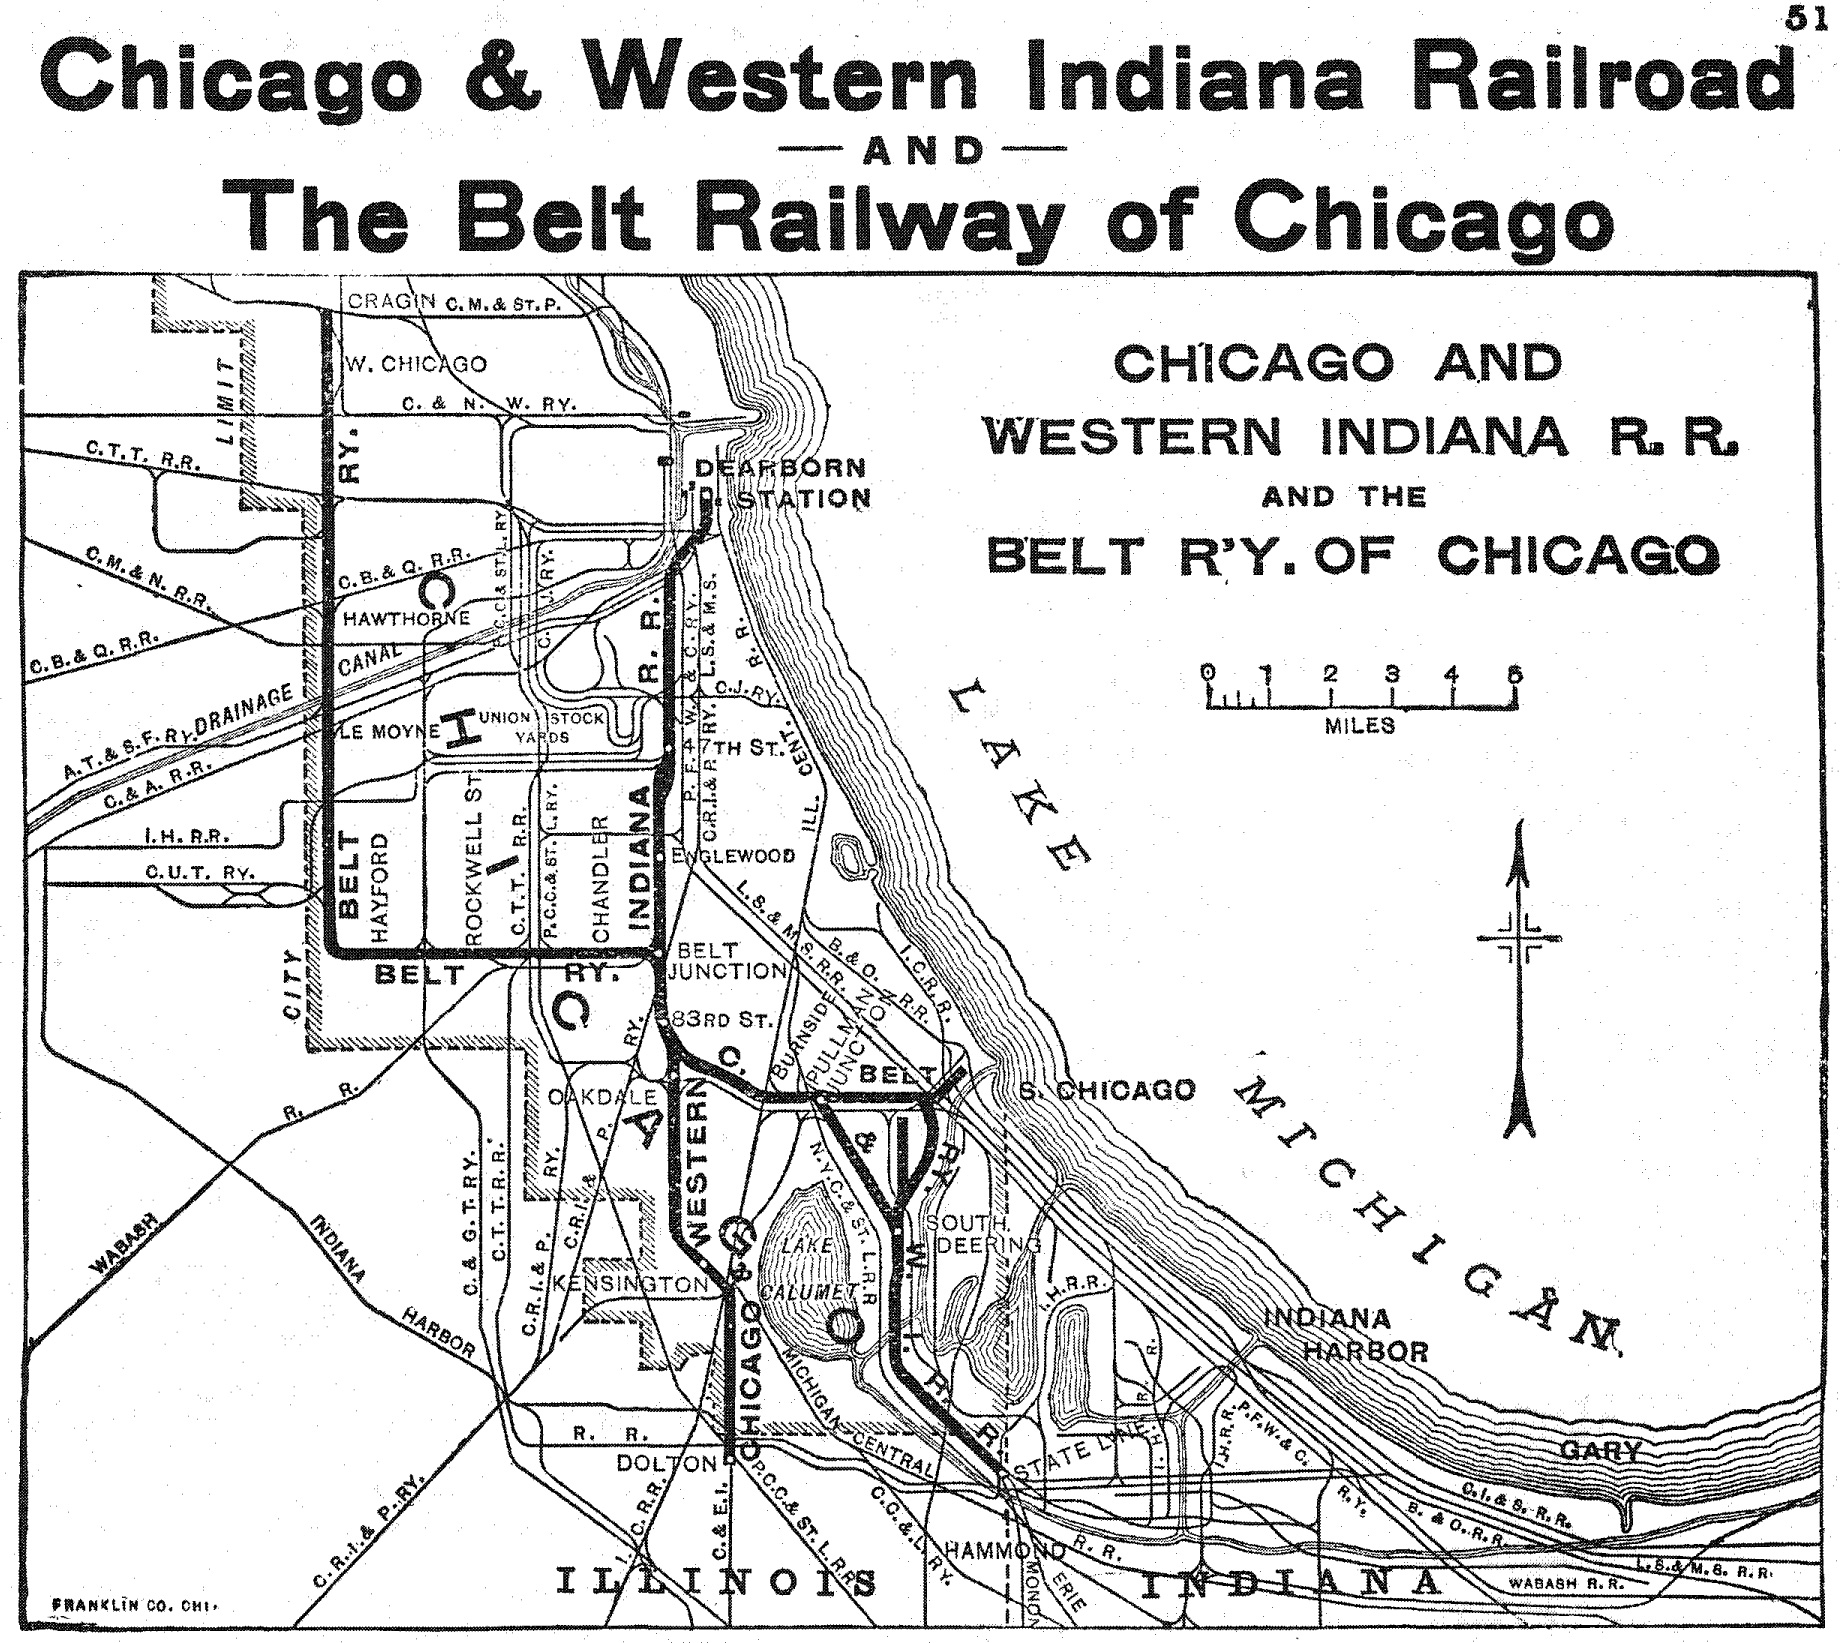 Chicago And Western Indiana Railroad on indiana gas line maps, indiana breweries list, indiana industrial map, wayne county michigan zip code map, central of georgia map, indiana railroads 1950s, indiana utilities map, us 40 indiana map, monon indiana map, norfolk & western map, big indiana state map, cleveland rail map, indiana electrical lines, indiana ohio railway company, indiana truck map, indiana outline vector, indiana trains, minnesota commercial railway map, big pine creek indiana map, indiana interurban,